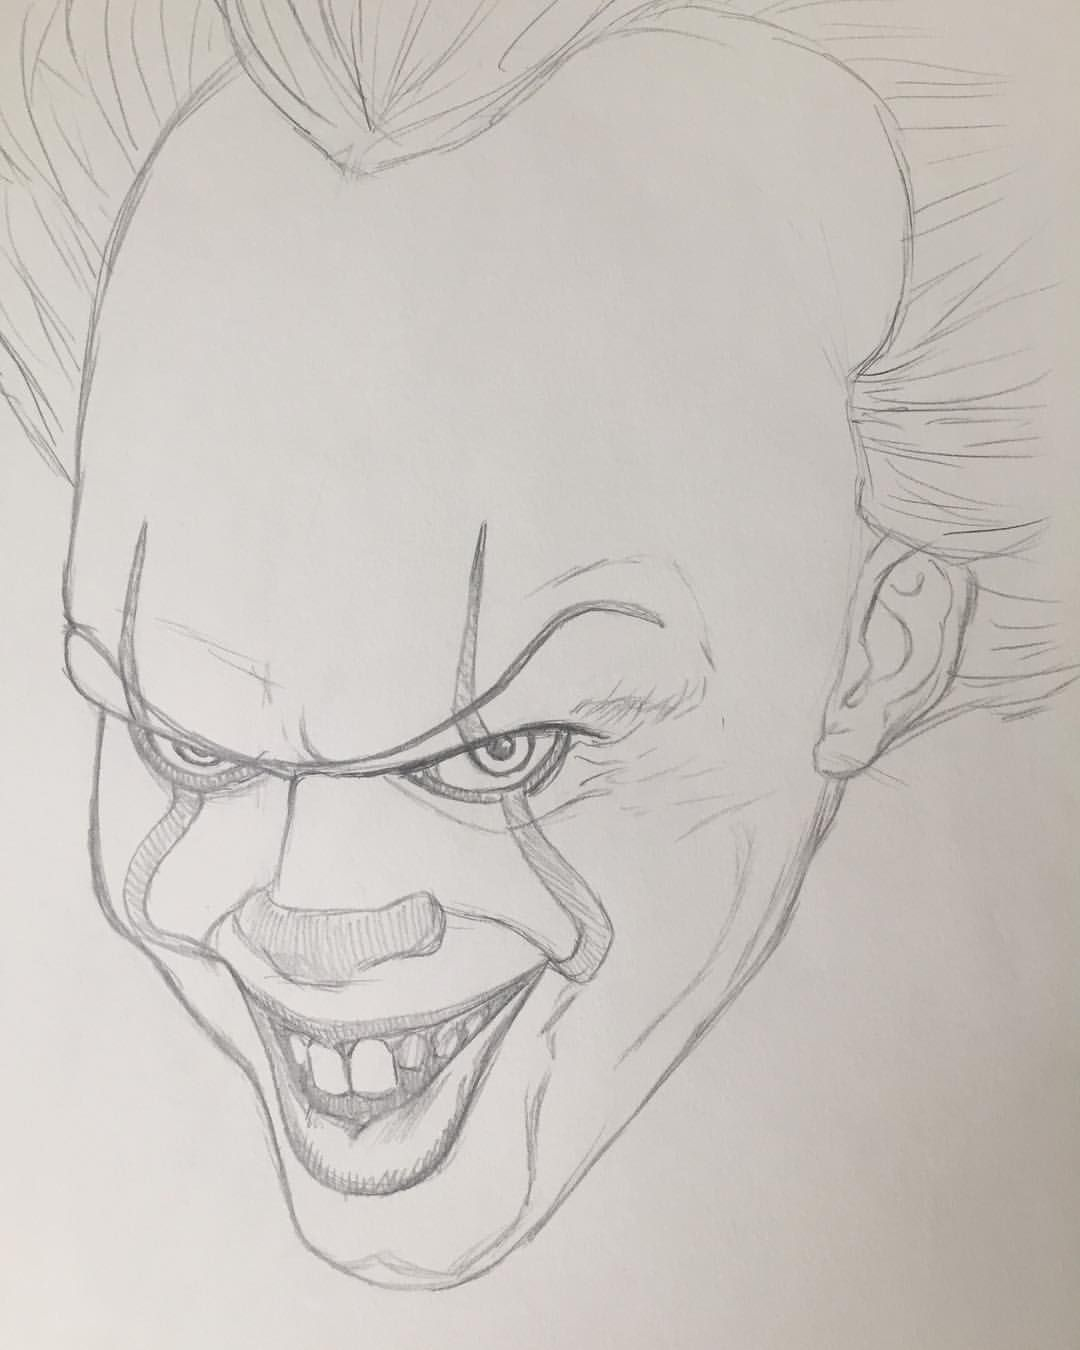 How To Draw A Scary Clown By Dawn With Images Cool Cartoon